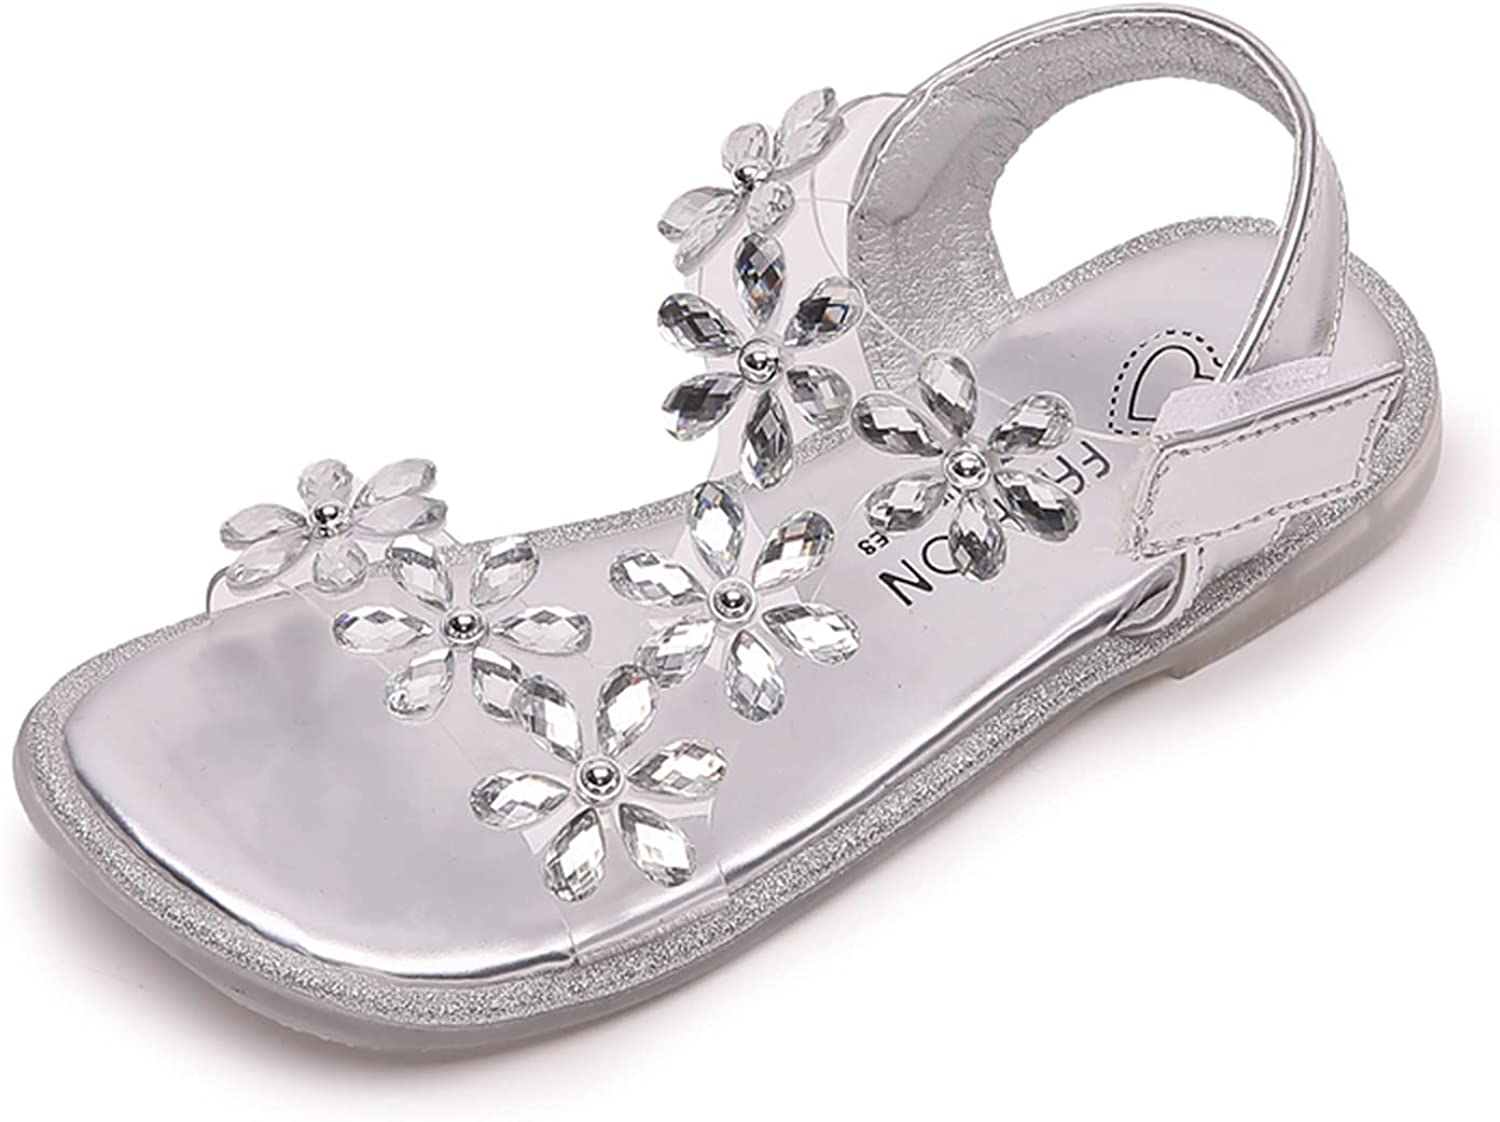 JUBAIYUAN Breathable Glitter Rhinestone Princess Ballet Flats, Suitable for Toddlers